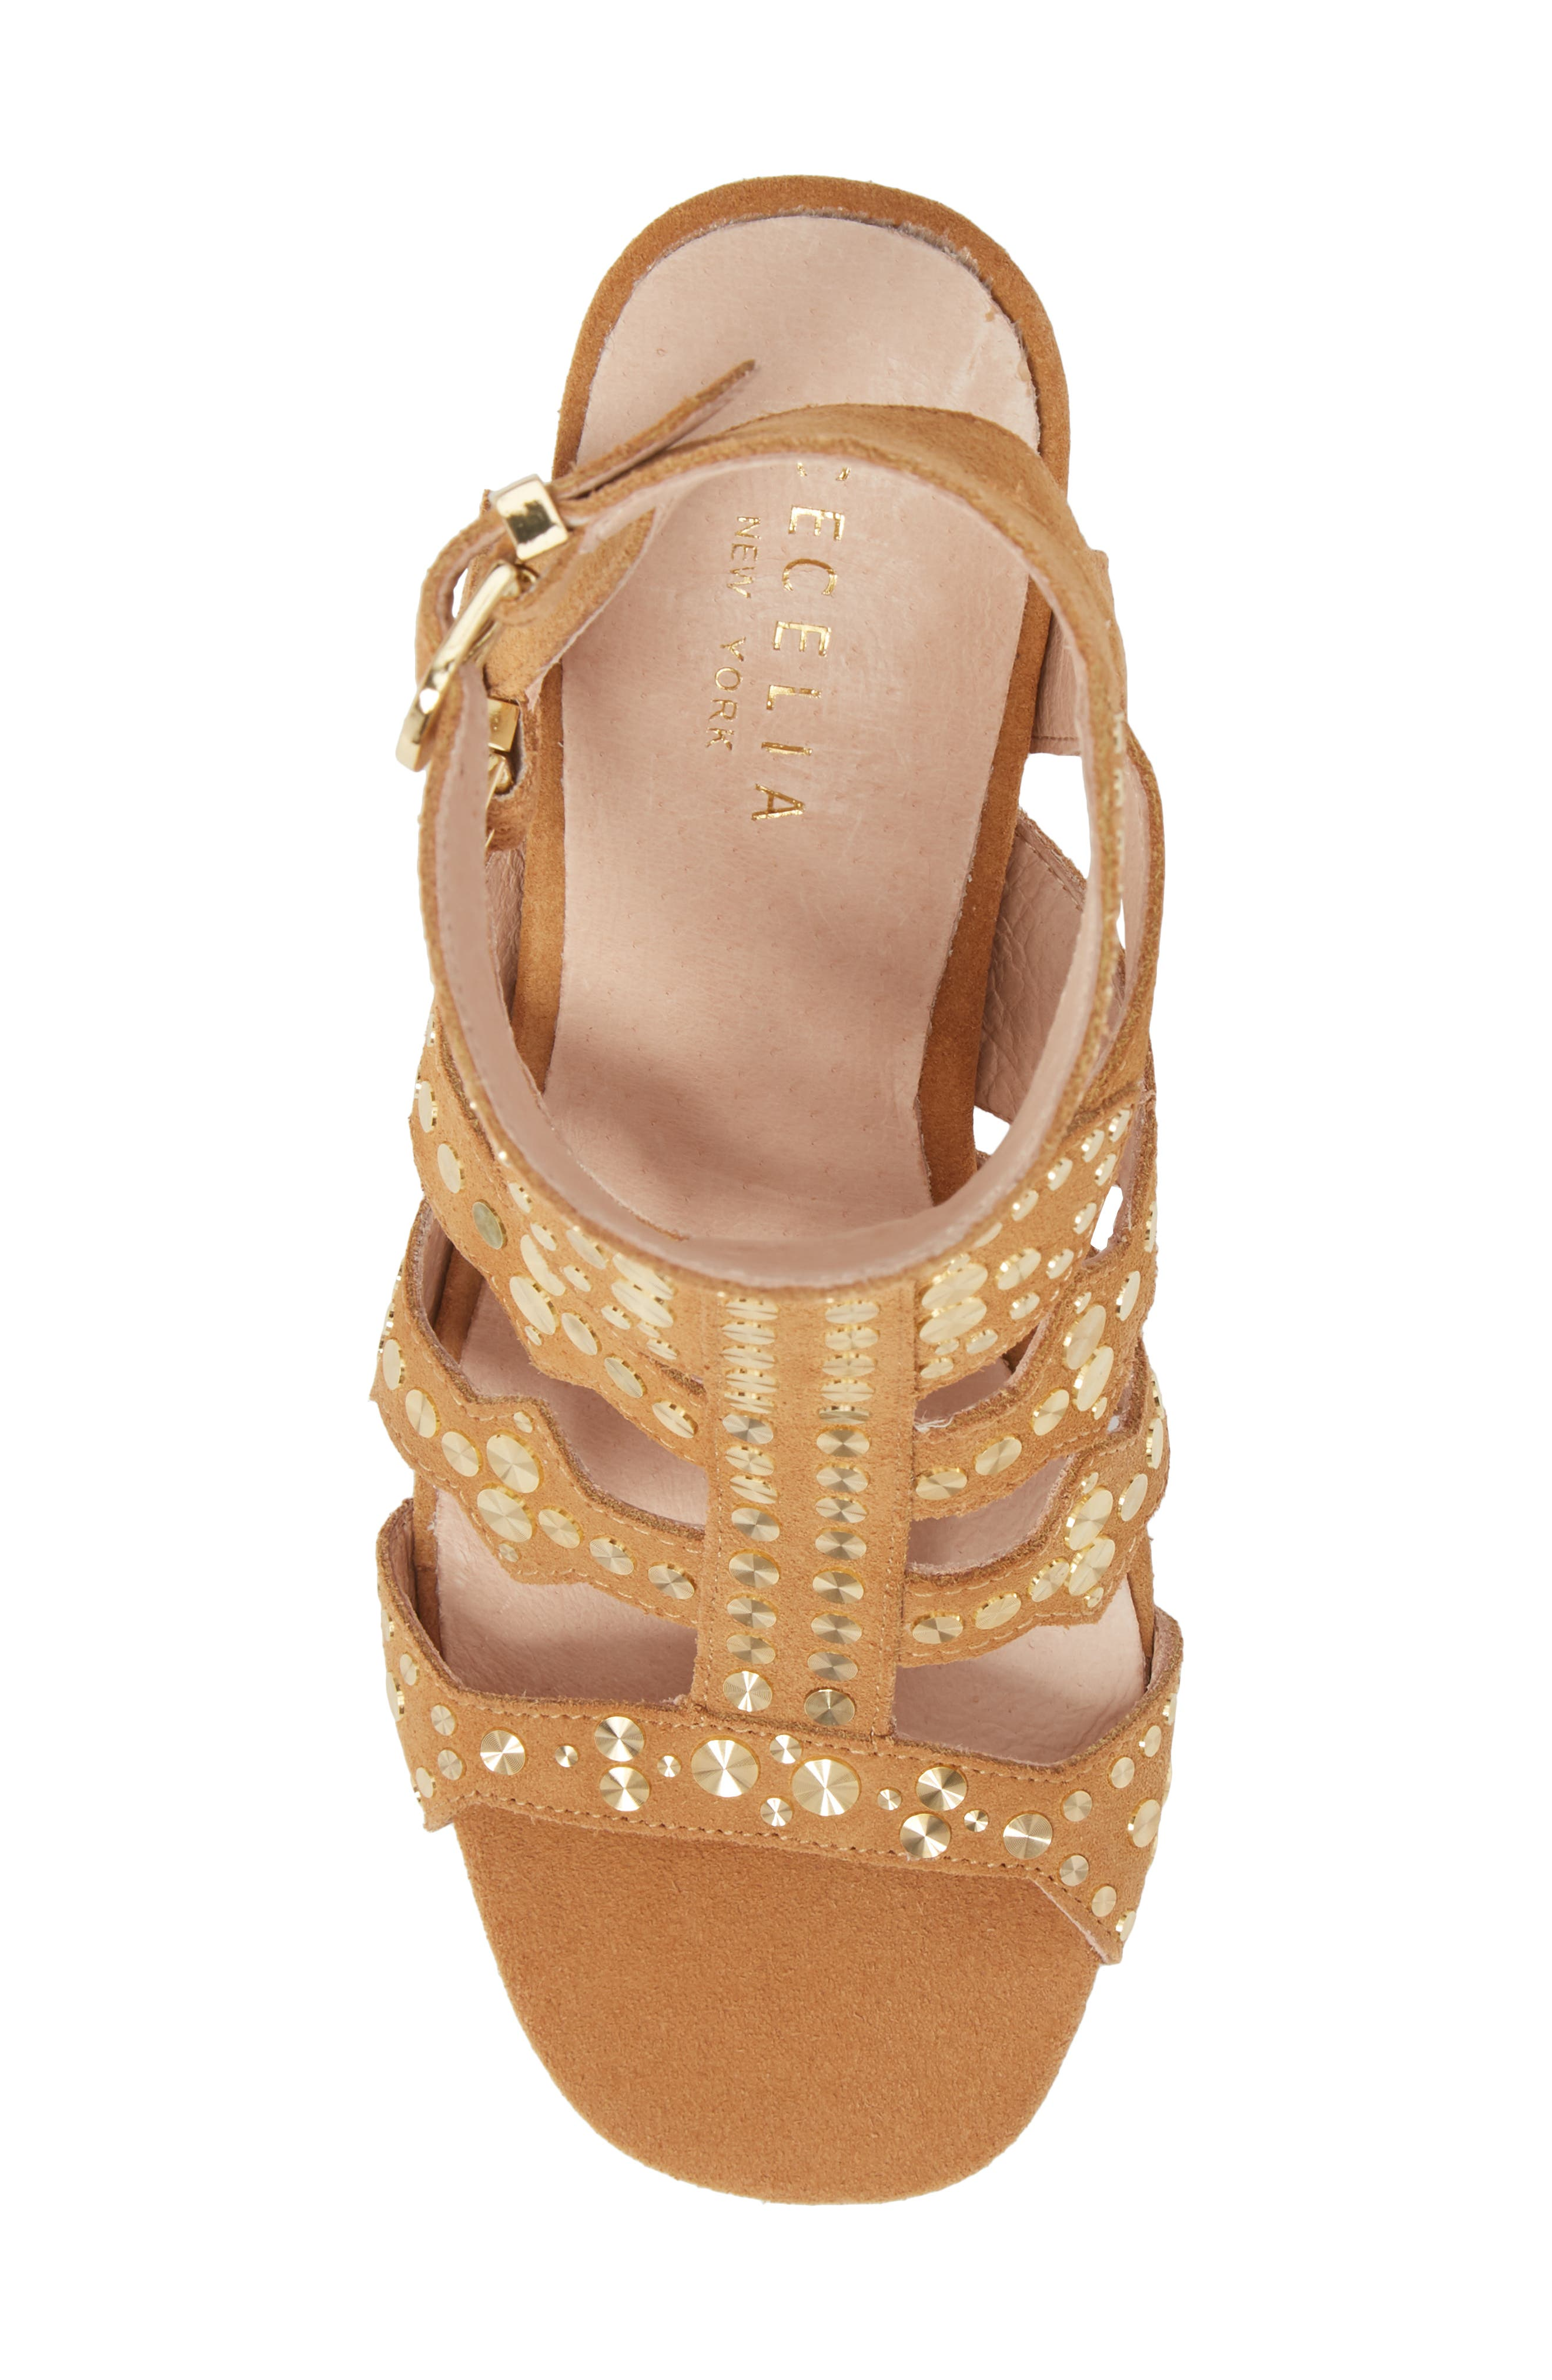 CECELIA NEW YORK,                             Cosmo Studded Sandal,                             Alternate thumbnail 5, color,                             200